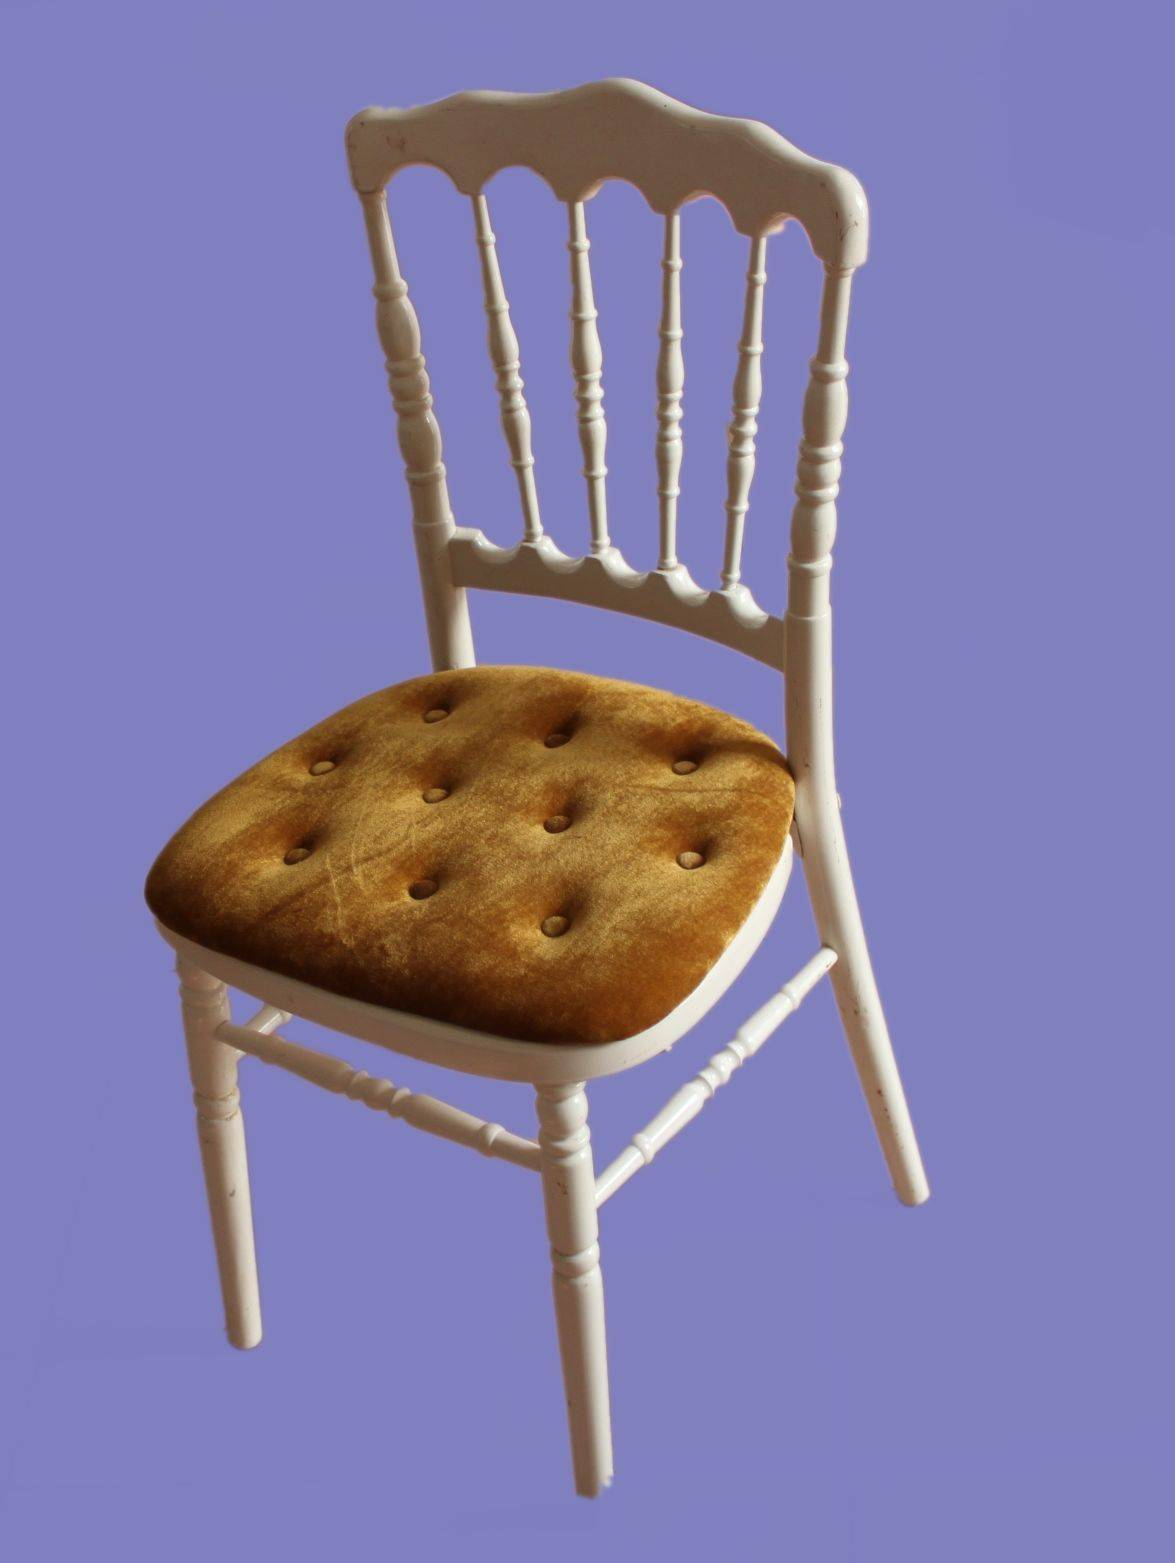 sell chiavari chair,chateau chair,napoleon chair,barstool chair and folding chair and table